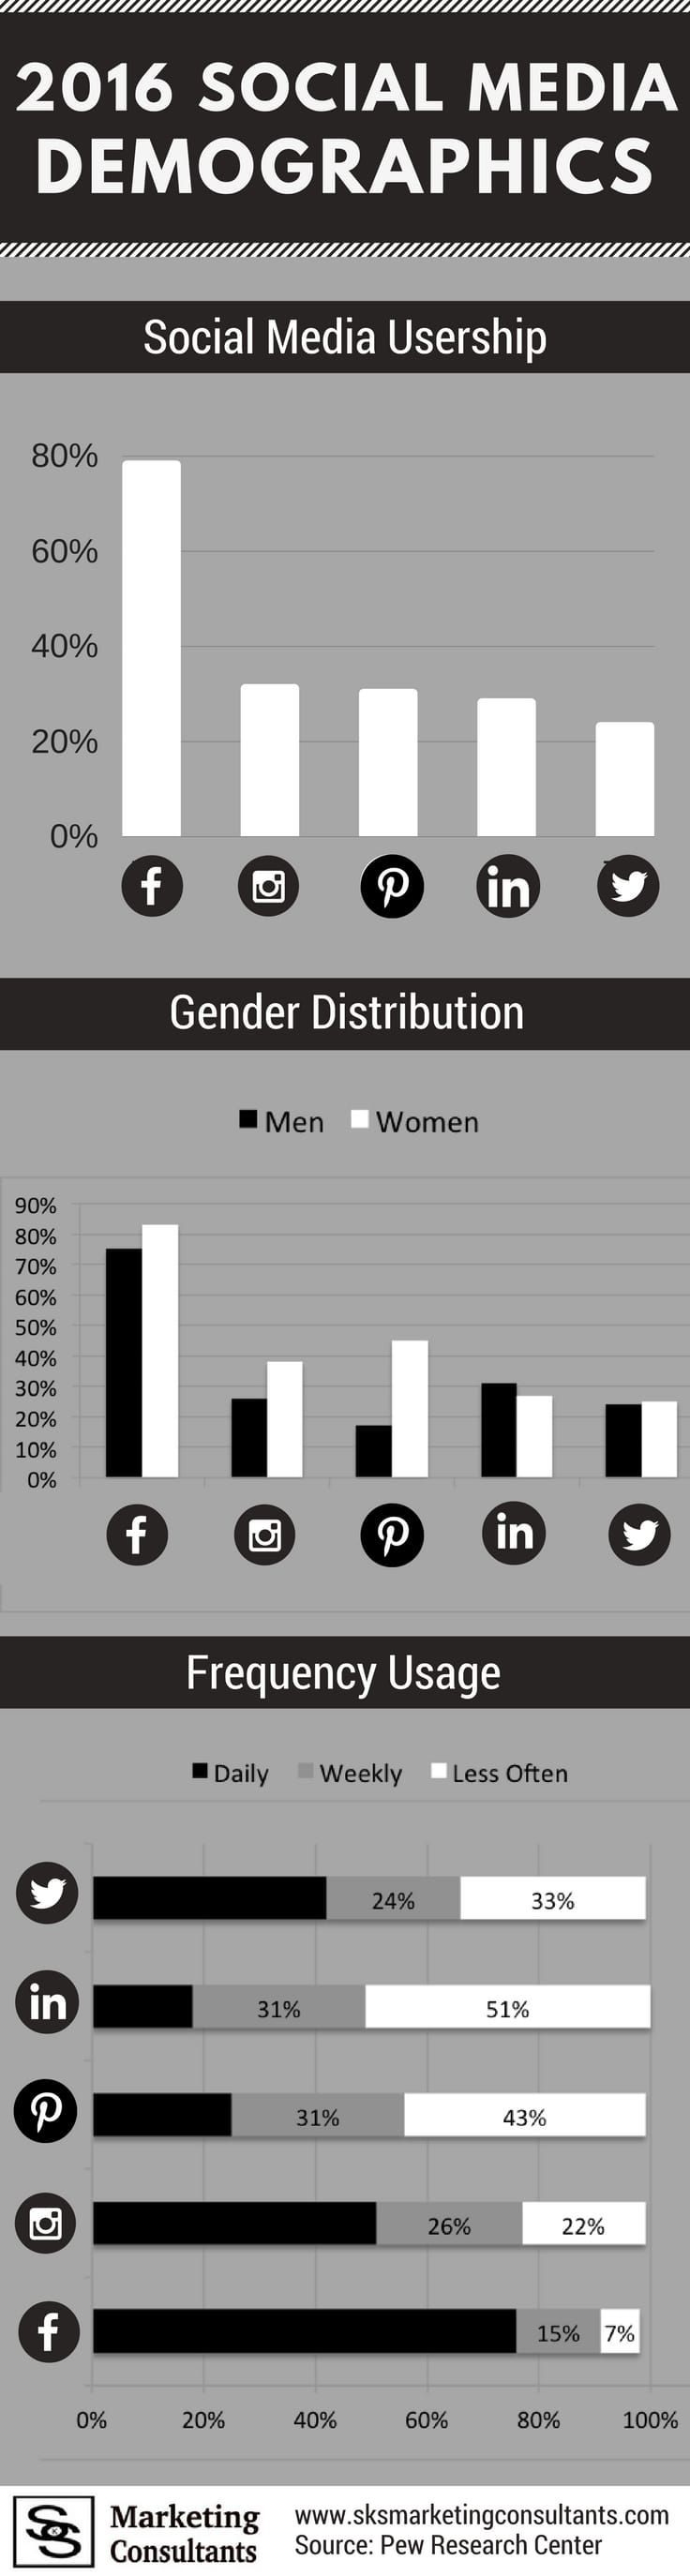 Learn about 2016 Social Media demographics including social media usership, gender distribution and frequency usage of the top 5 social media platforms.   Begin planning your 2017 social media strategy by gaining a better understanding of 2016.  #socialmedia #socialmediamarketing #marketingstrategy #socialmediastrategy #marketing #infographics #2017marketing #Facebook #Twitter #LinkedIn #Instagram  #Pinterest